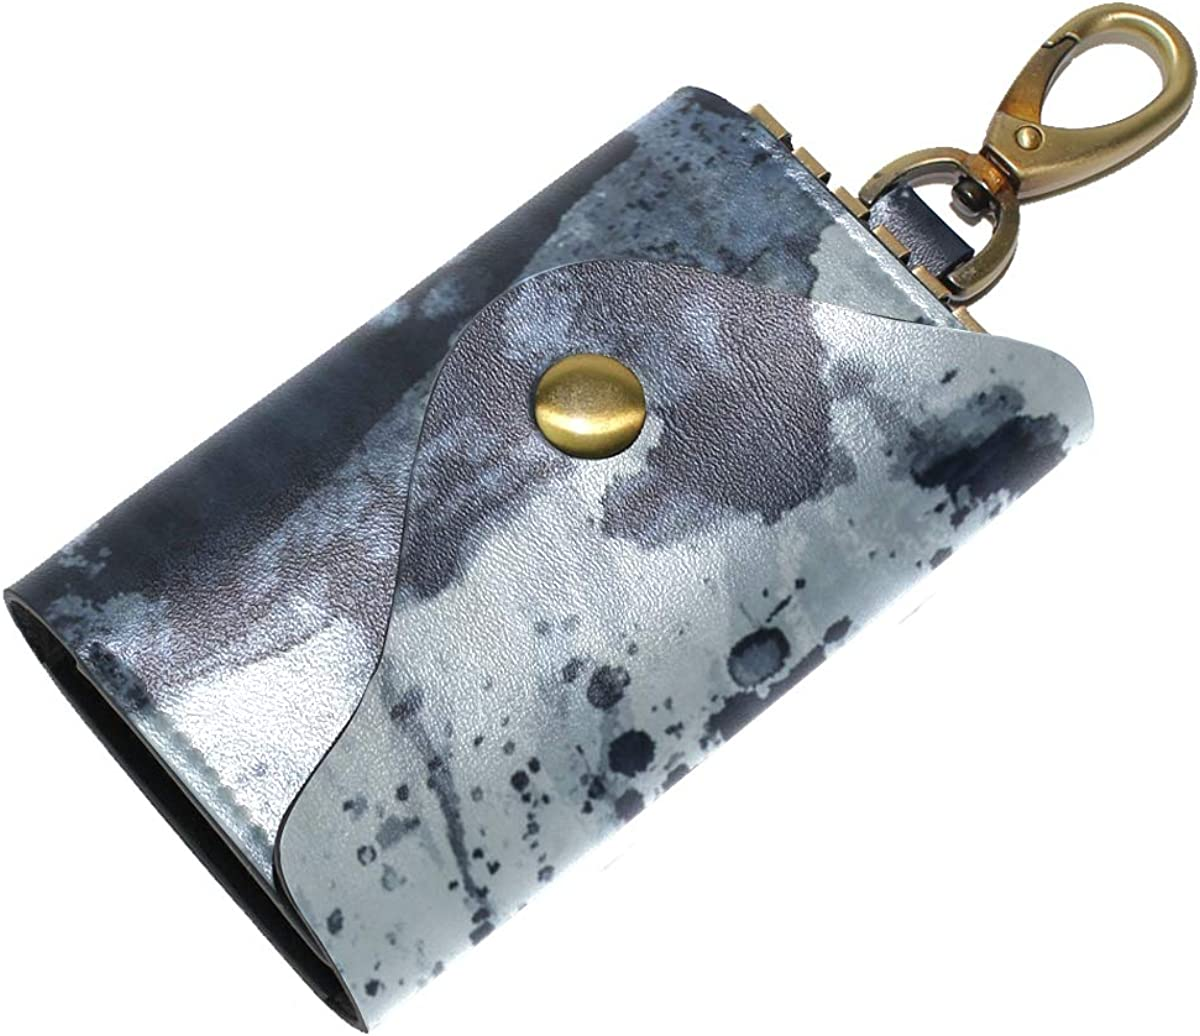 KEAKIA Contemporary Blue And Grey Leather Key Case Wallets Tri-fold Key Holder Keychains with 6 Hooks 2 Slot Snap Closure for Men Women